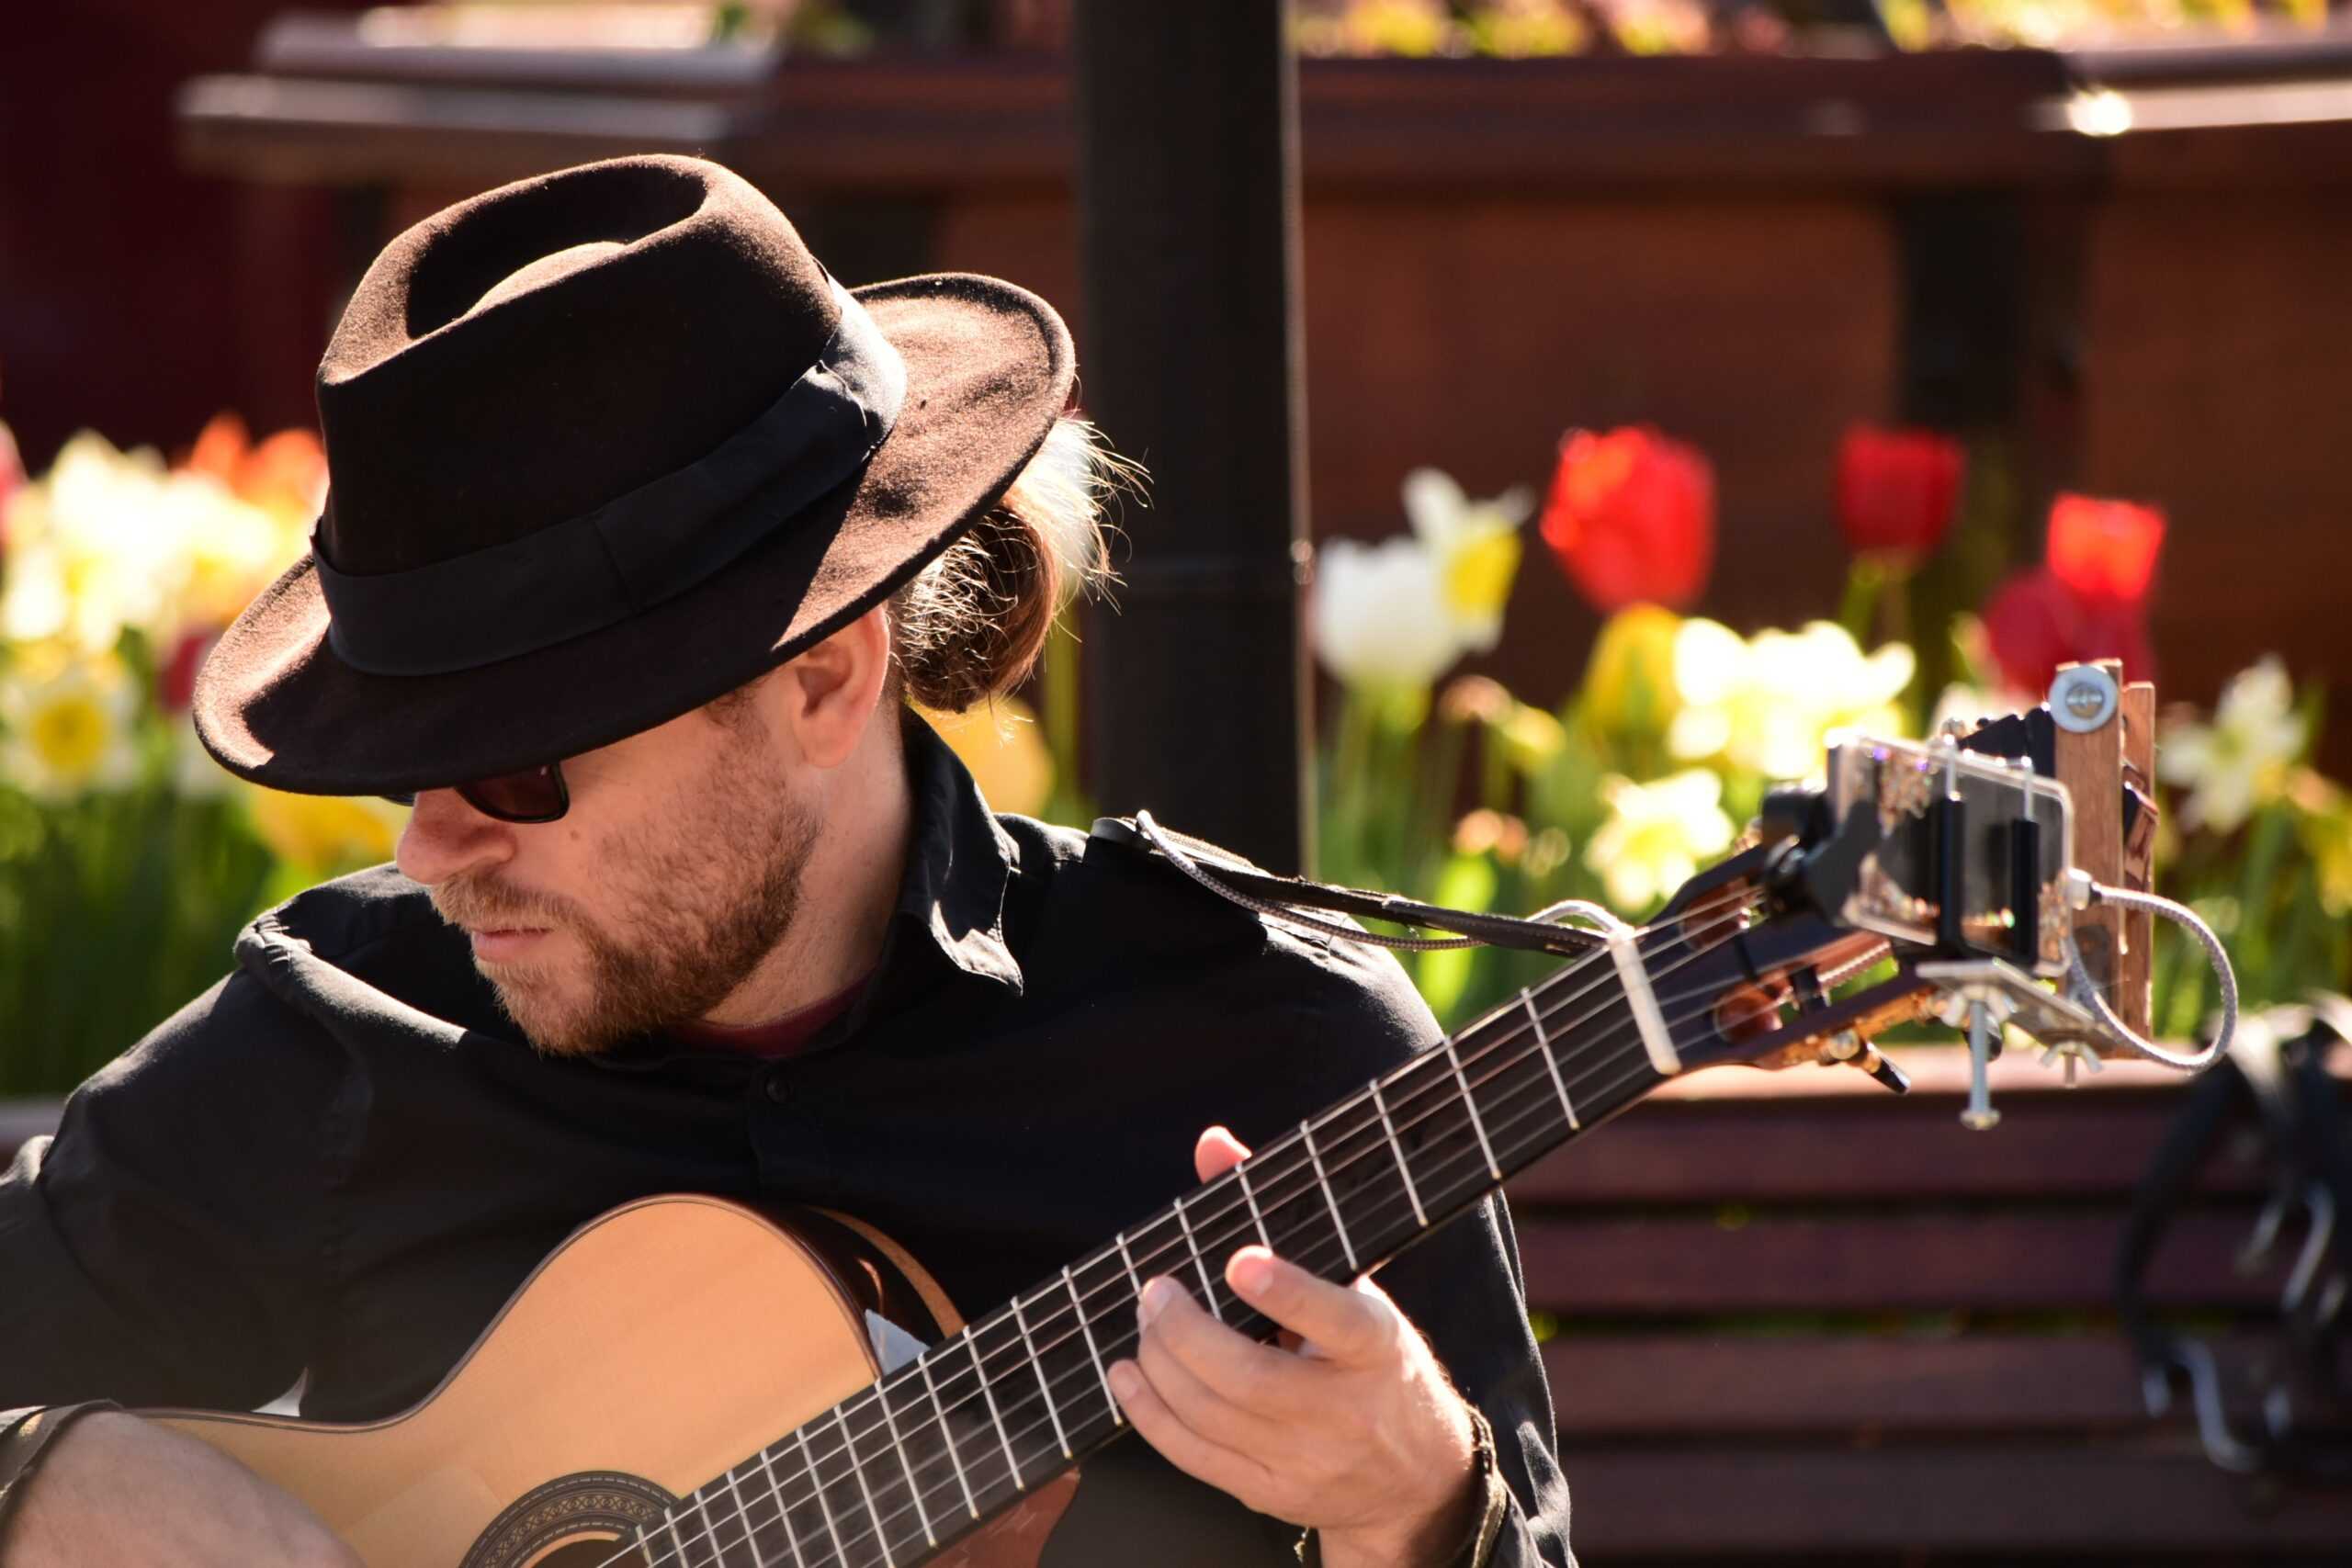 Man Playing Guitar | 9 Attributes You Need To Have When Learning The Guitar